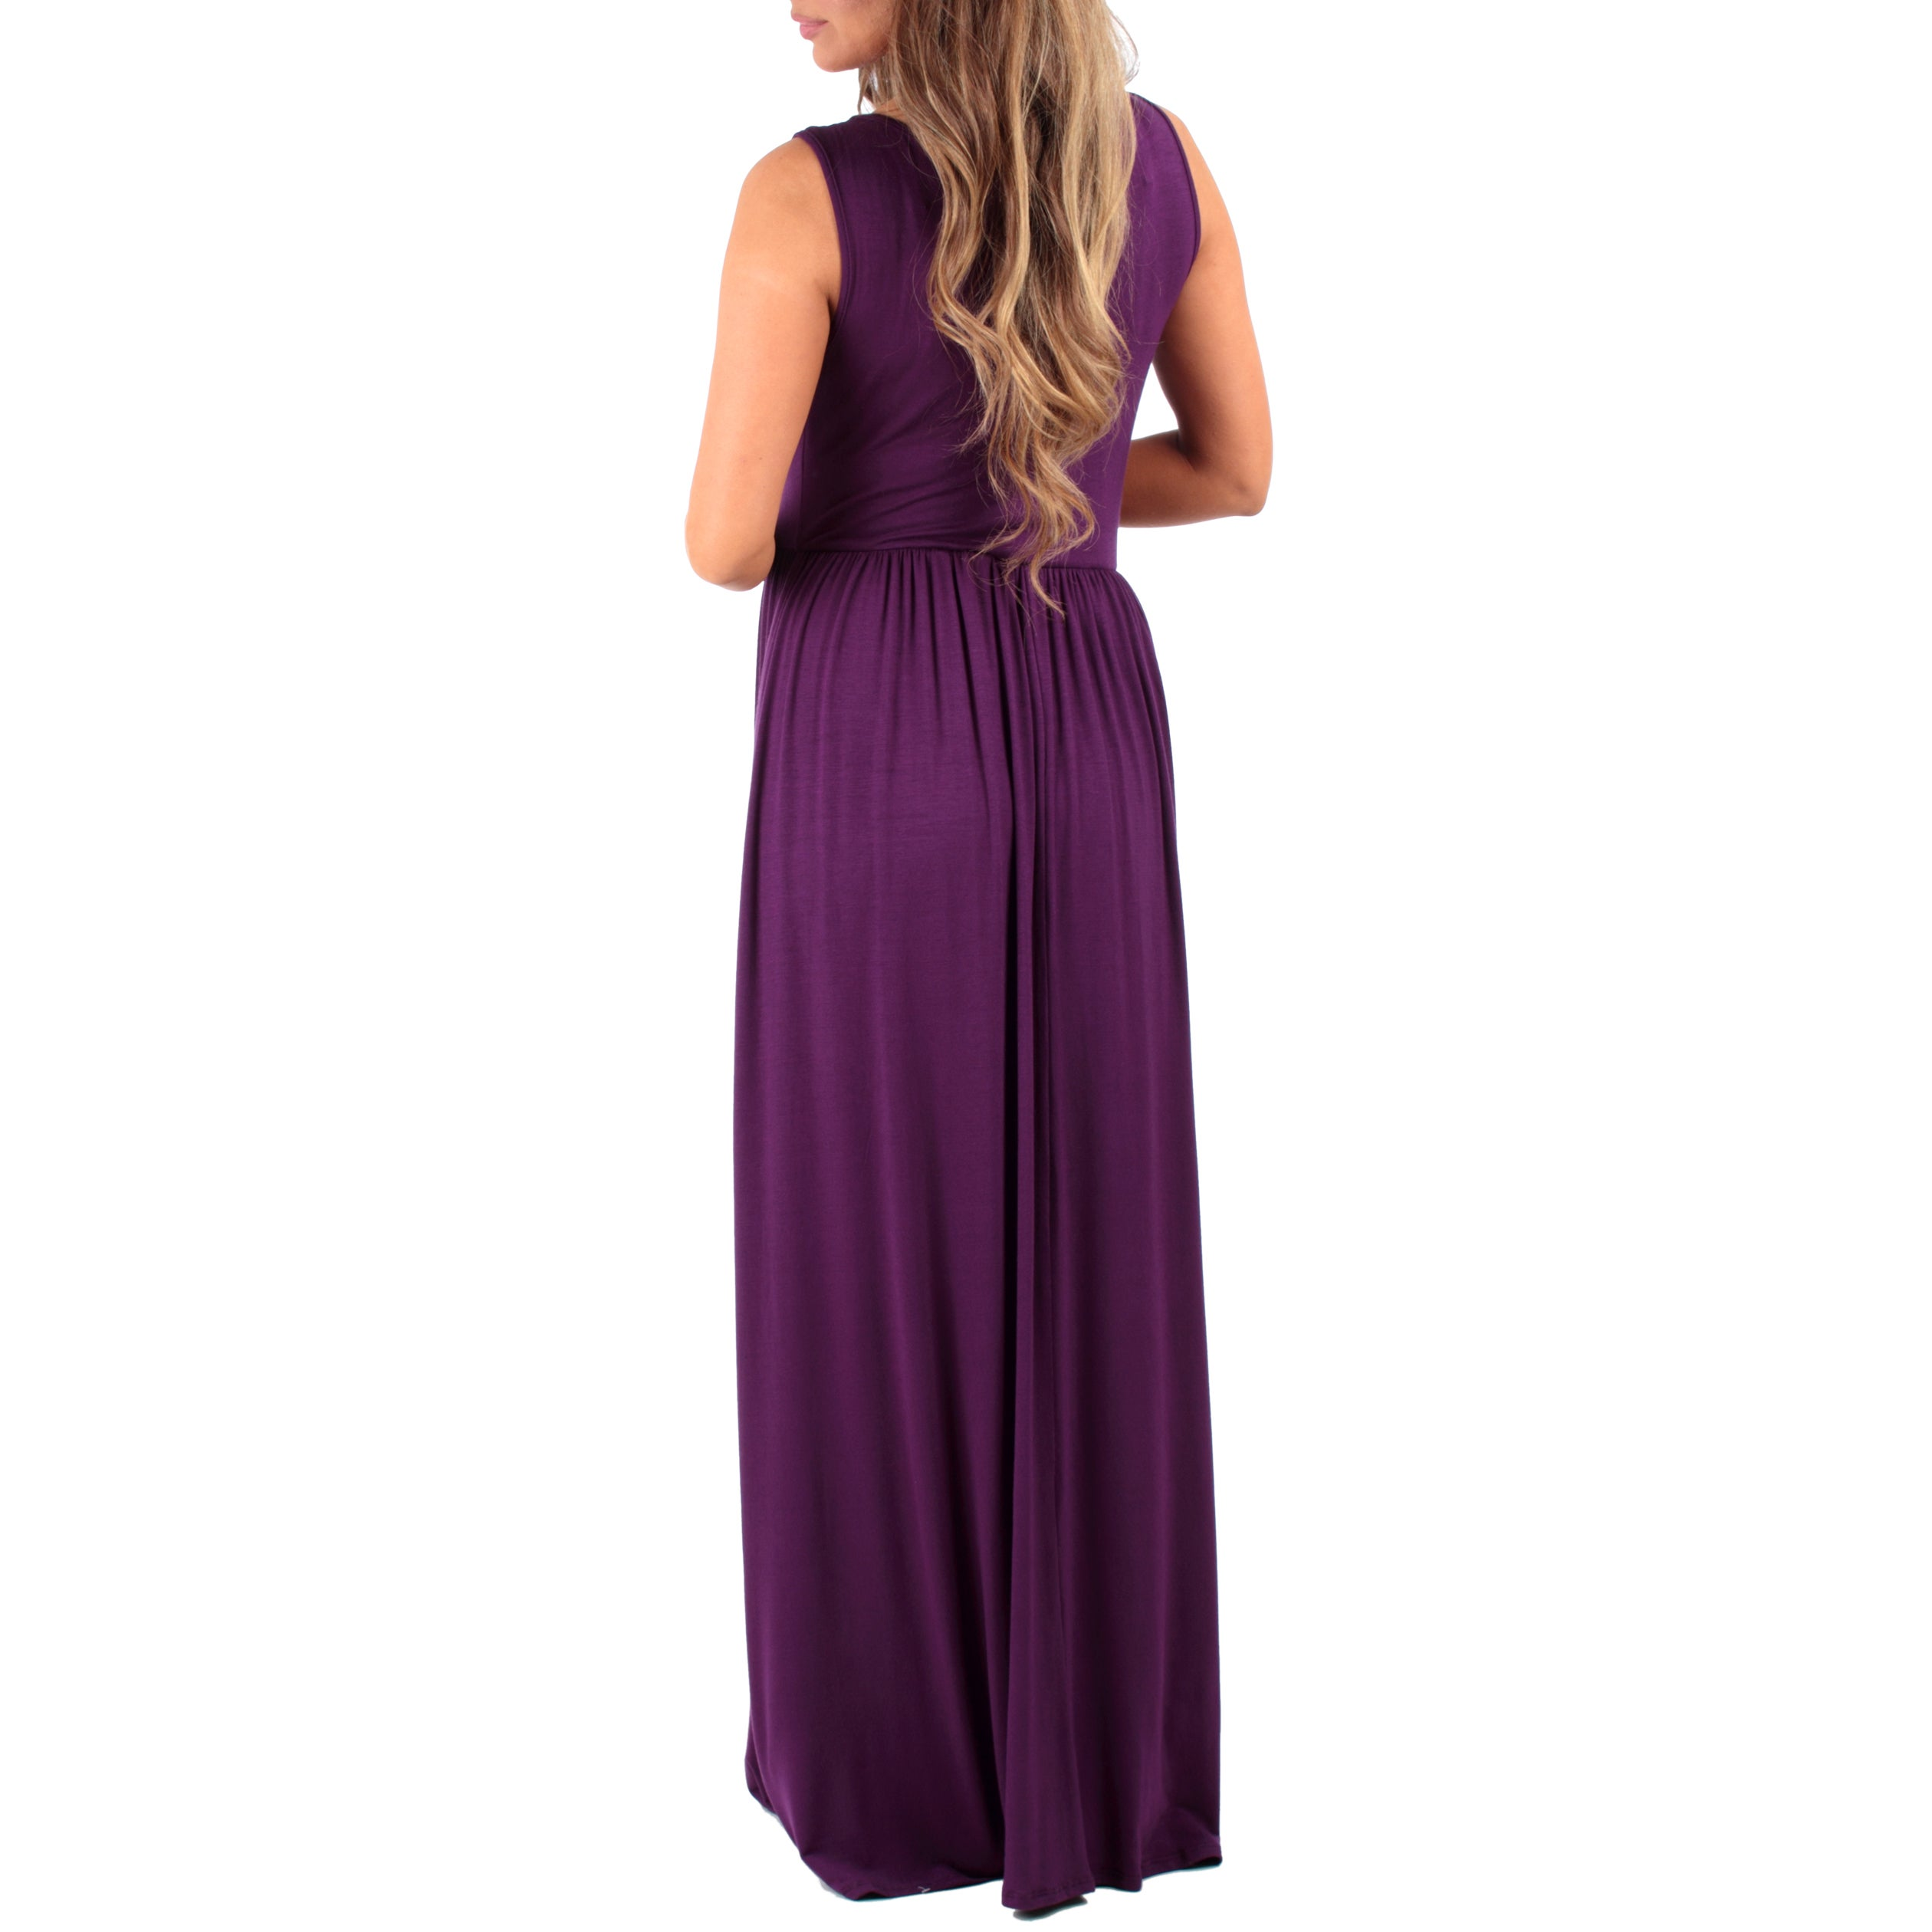 c97aac627b8ad Shop Mother Bee Women's Ruched Sleeveless Maternity Dress - Free Shipping  On Orders Over $45 - Overstock - 14770922